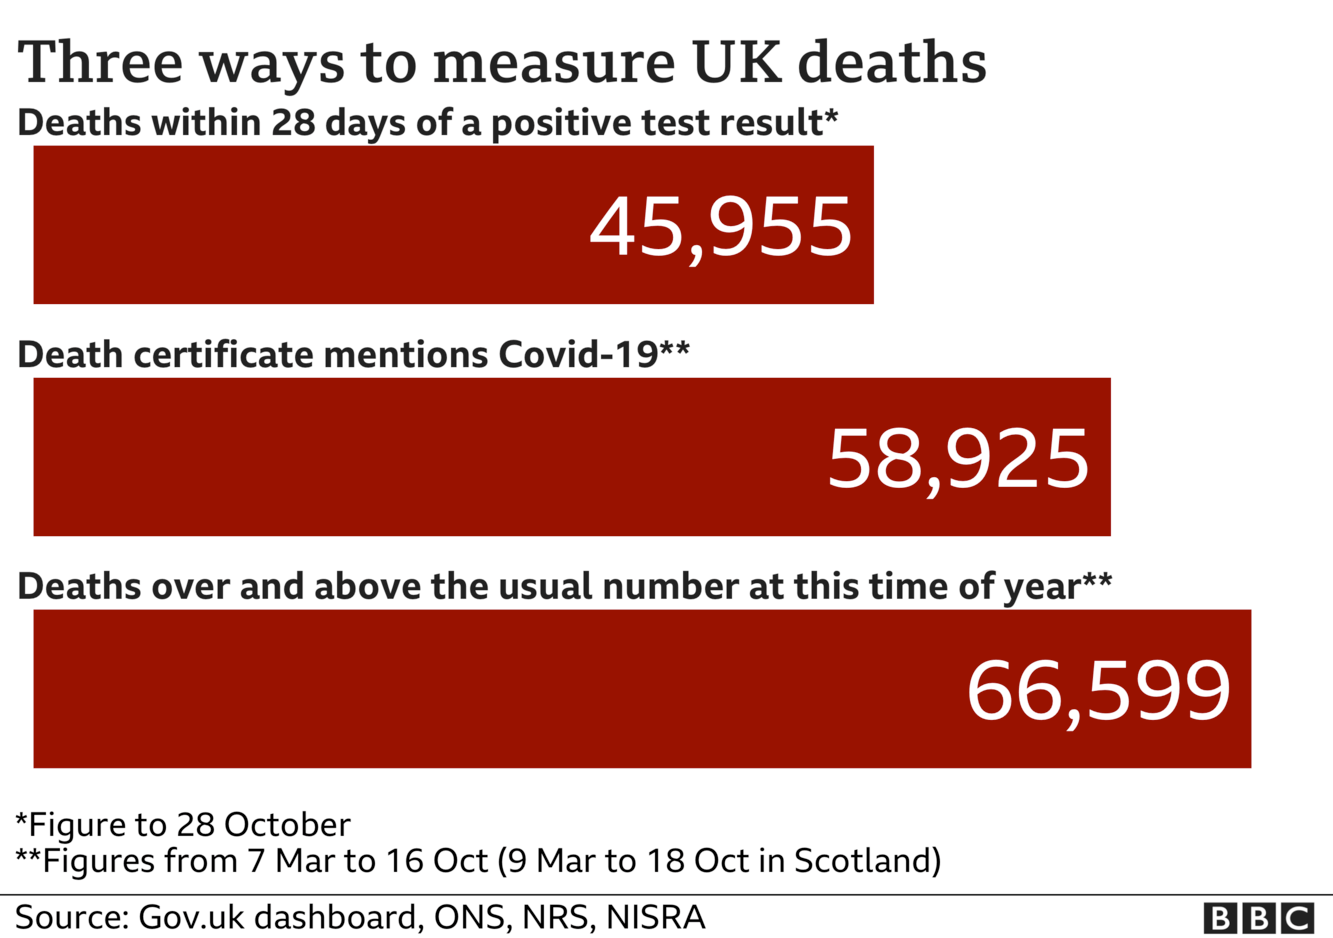 Chart shows three ways of measuring coronavirus deaths - government statistics count everyone who dies withint 28 days of a positive test, the total is now 45,955, ONS stats include everyone where coronavirus was mentioned on the death certificate and that total is now 58,925, the final total includes all excess deaths over and above the usual number and that is now 66,599, updated 29 Oct